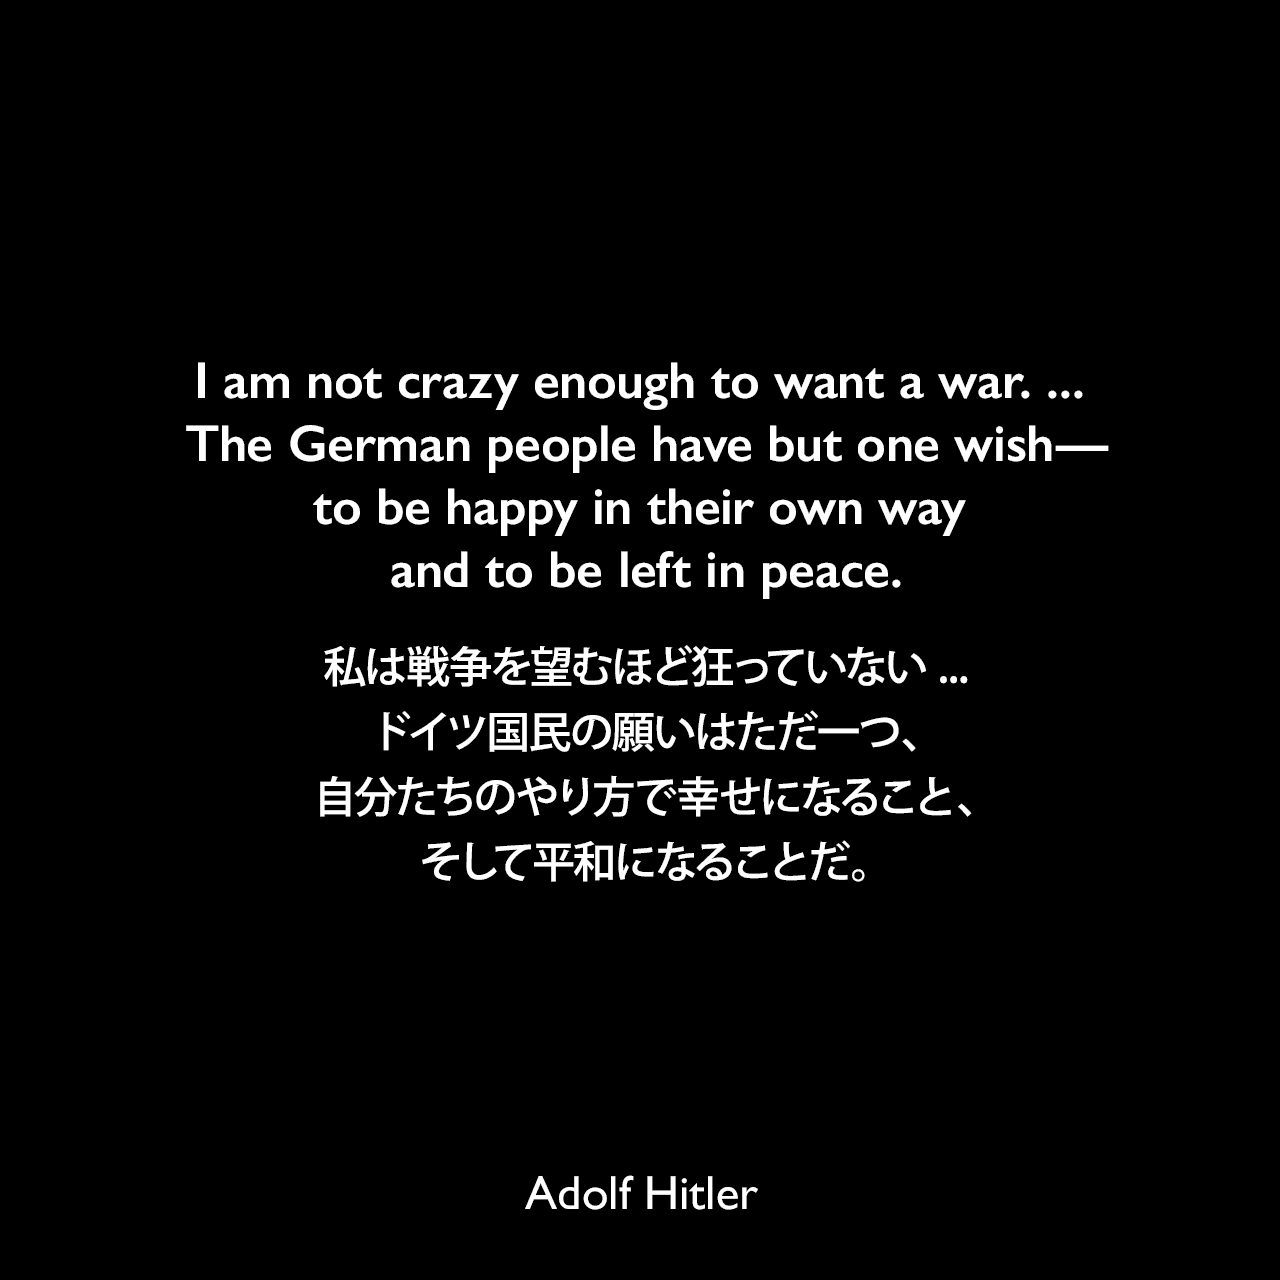 I am not crazy enough to want a war. ... The German people have but one wish—to be happy in their own way and to be left in peace.私は戦争を望むほど狂っていない ... ドイツ国民の願いはただ一つ、自分たちのやり方で幸せになること、そして平和になることだ。- 1933年11月10日ベルリンでの演説より(1939年9月26日タイムズ紙より引用)Adolf Hitler